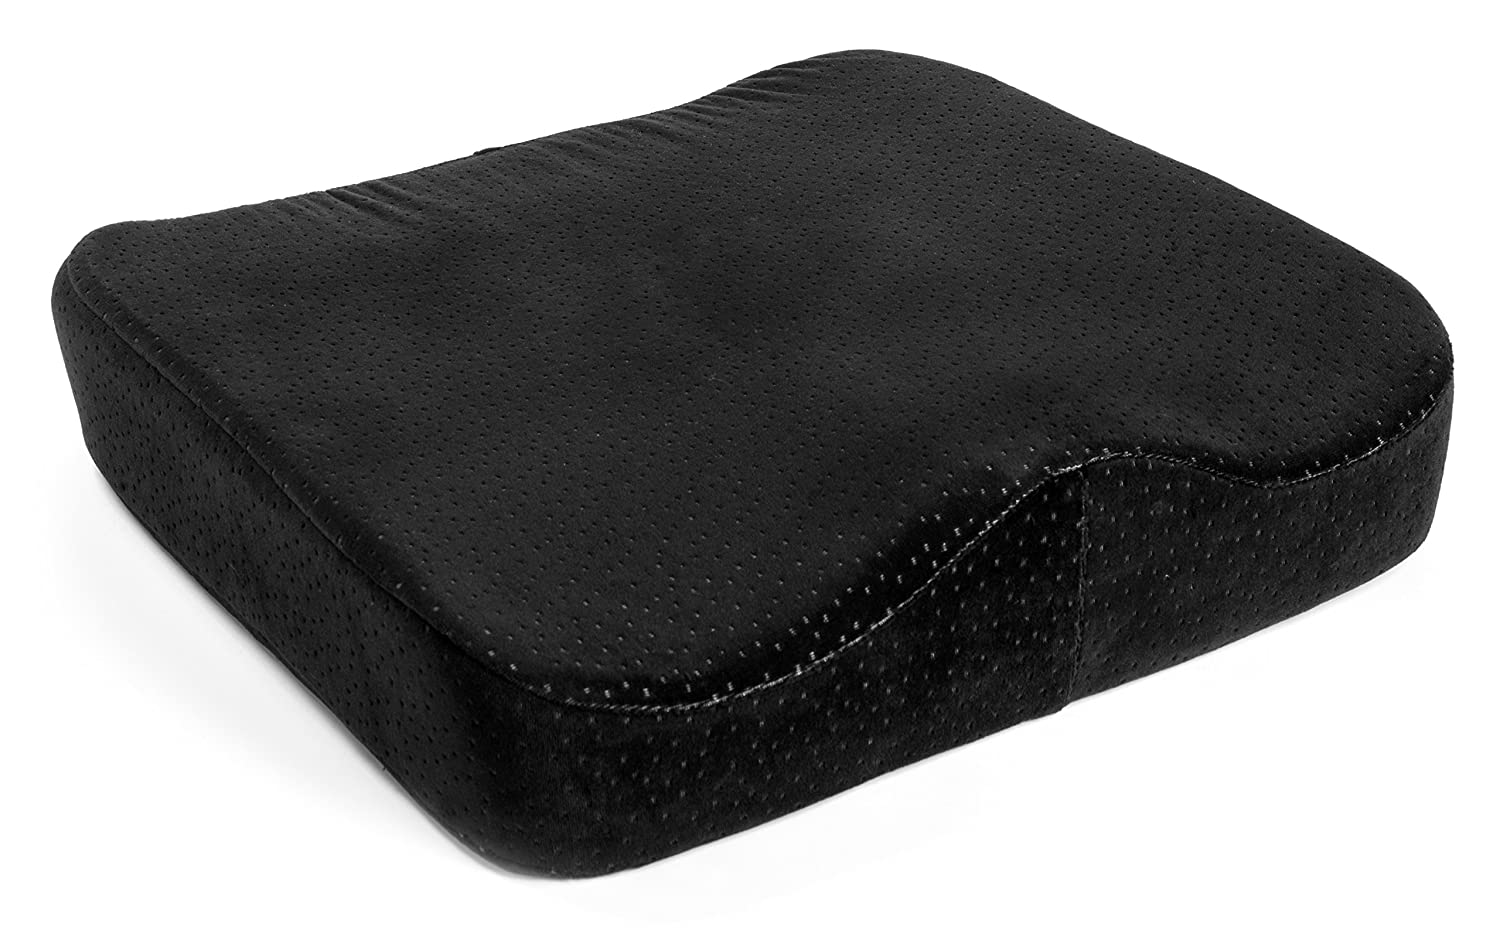 AERIS Memory Foam Premium Large Office Chair Pad with a Buckle to Prevent Sliding-Car Seat Cushion with Machine Washable Black Plush Velour Cover